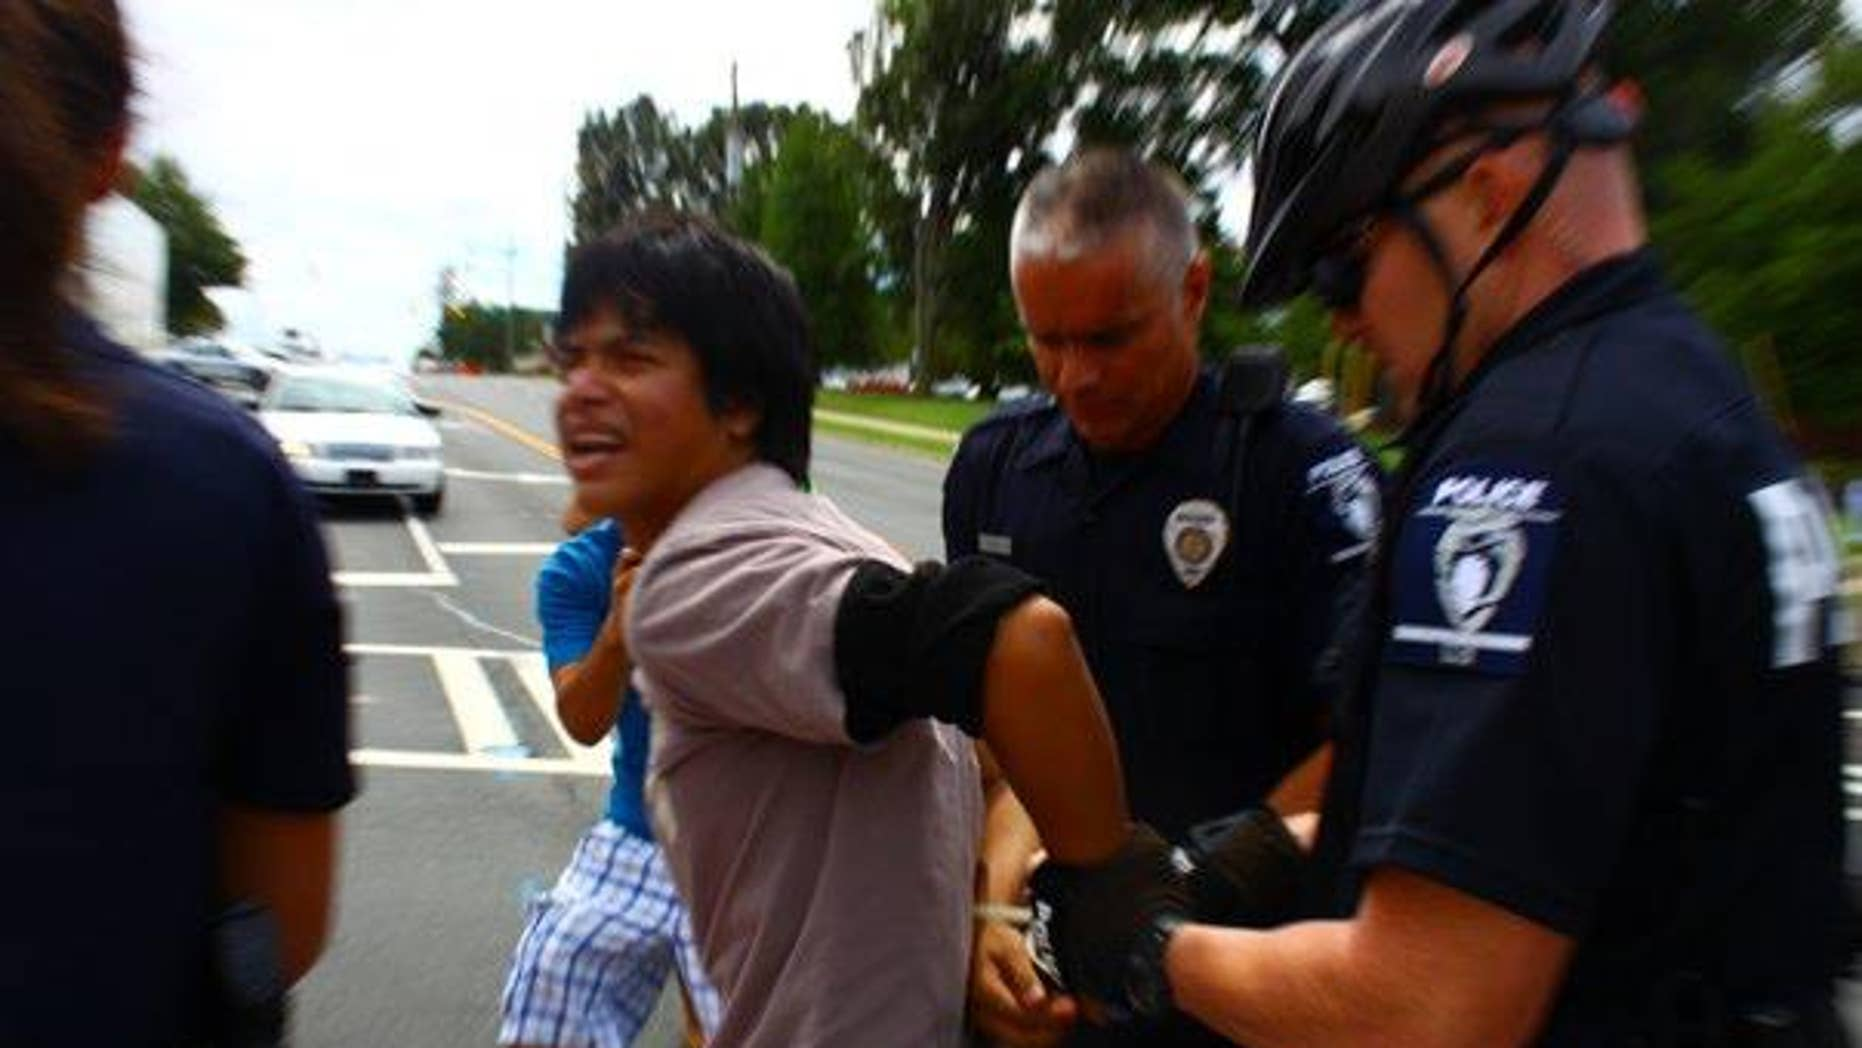 Santiago Garcia-Leco being arrested at an immigration rally.